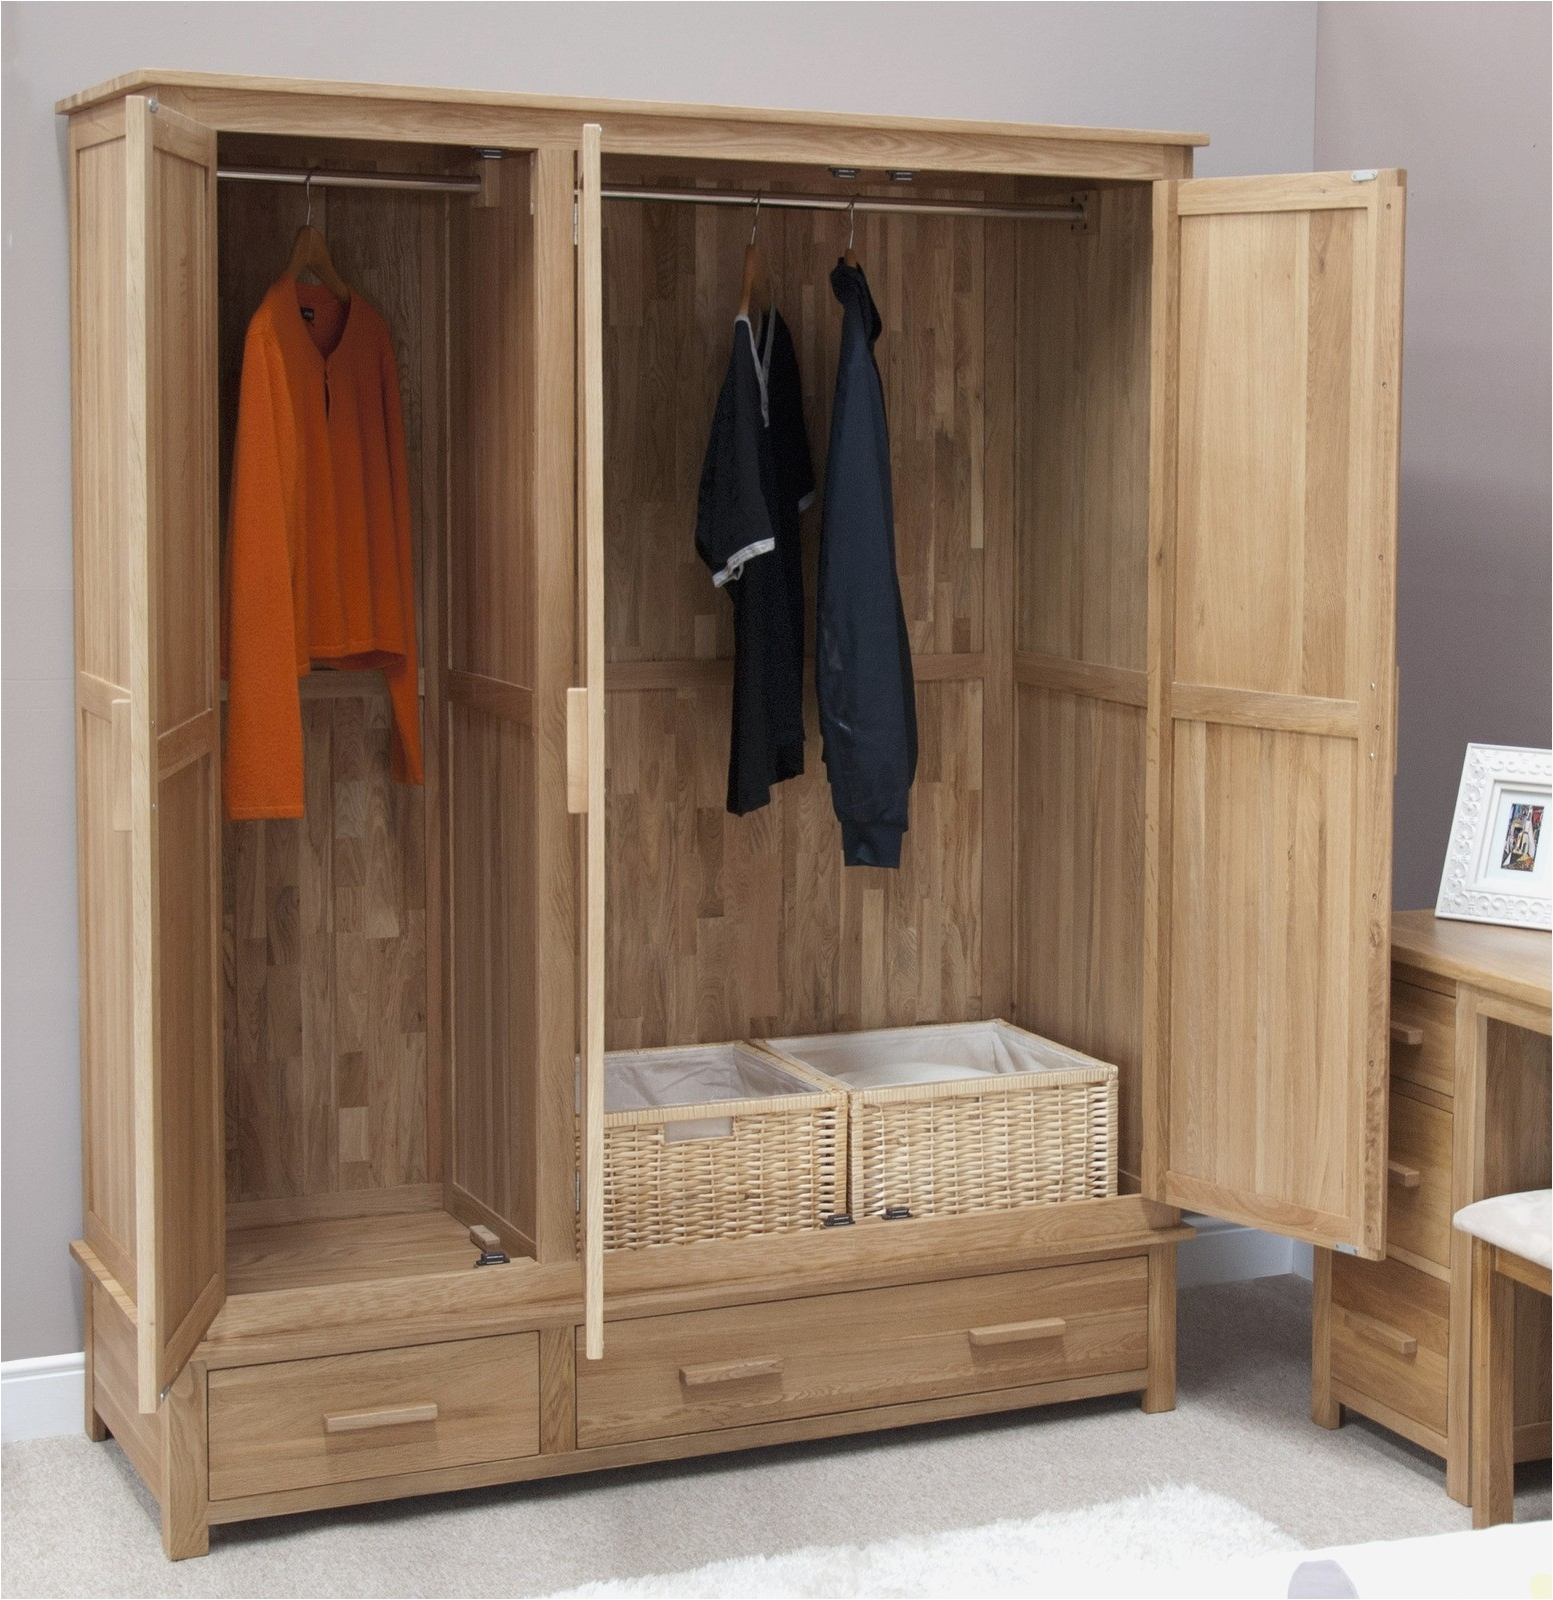 Oak Wardrobes For Sale Inside Most Recently Released Pine Oak Furniture Awesome Triple Wardrobe Wardrobes Buy Pine Oak (View 7 of 15)